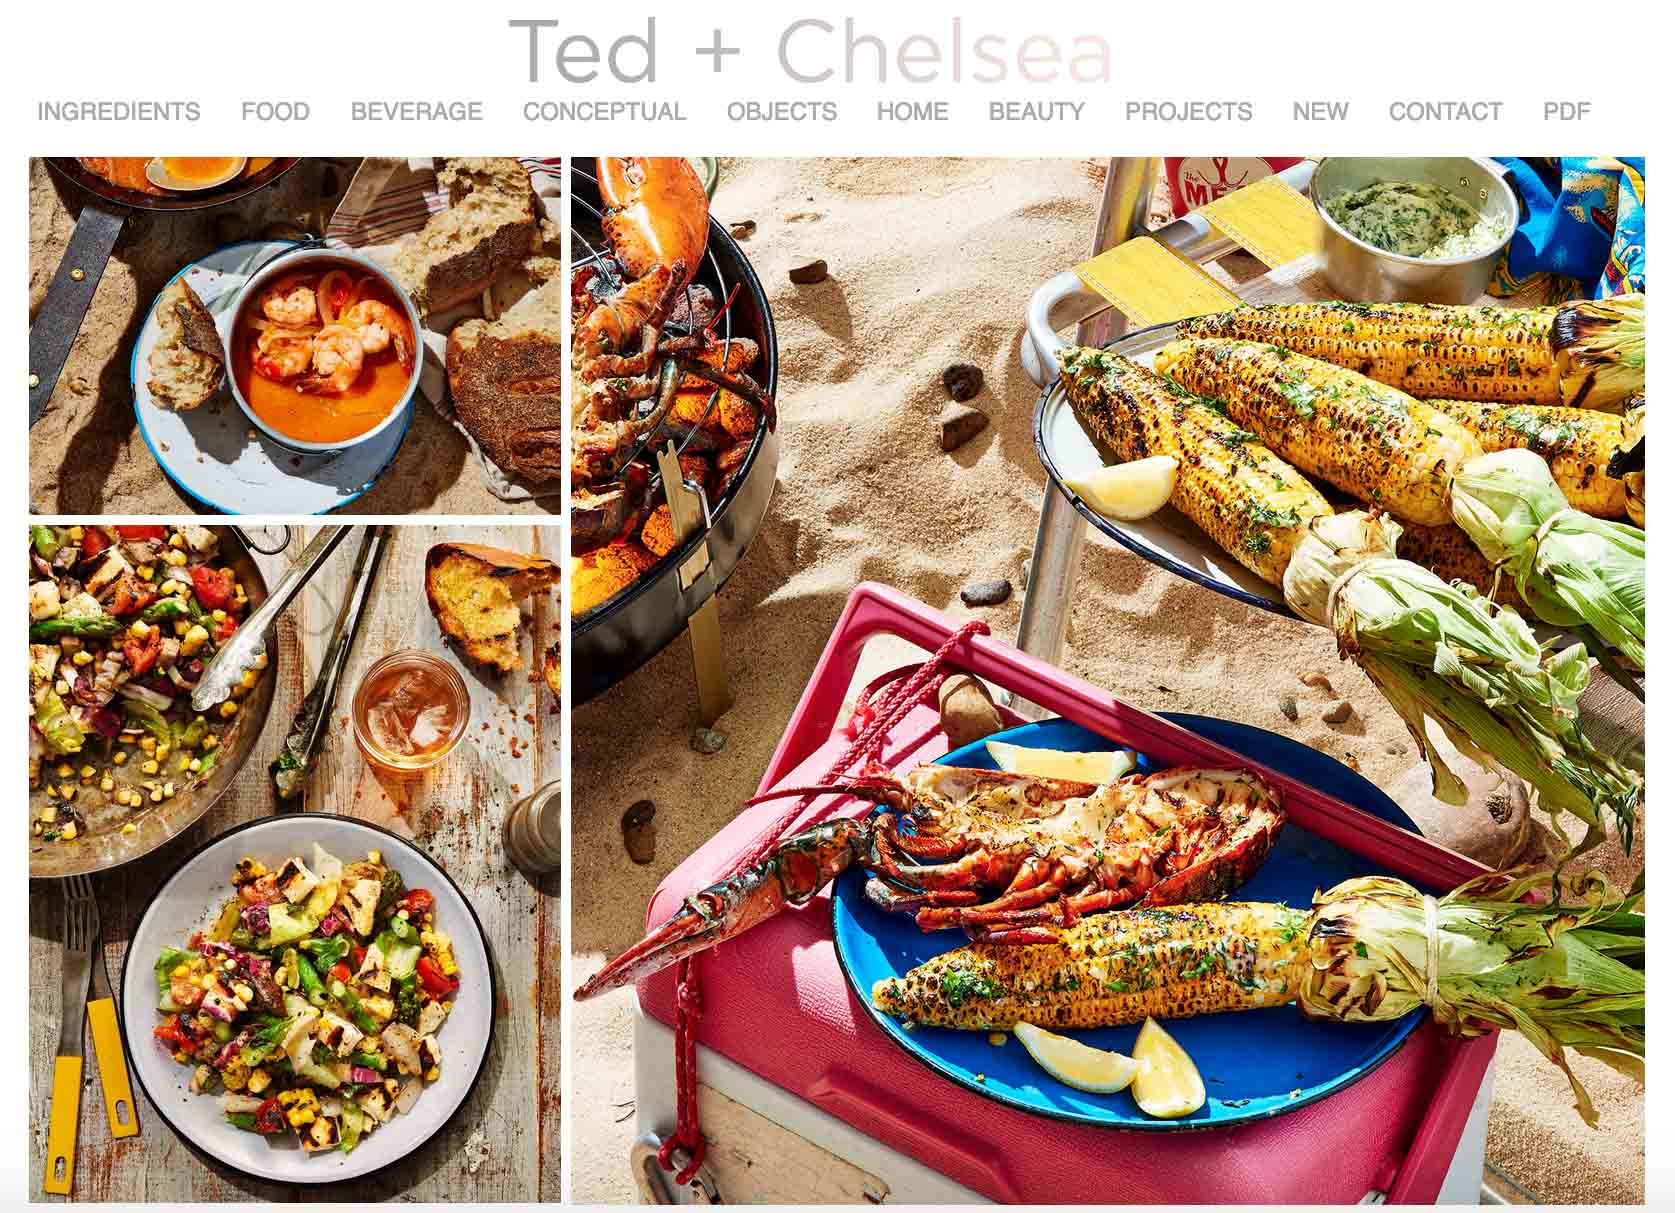 ted chelsea CAVANAUGH food photographer home page; food photographers stylists network platform; food stylists photographer blog website connection; creative inspiration food styling photography; learn food styling photography; phoode; food photographer los angeles; food creative director los angeles; job of commercial professional food photographer collaboration creative teamwork; phoode